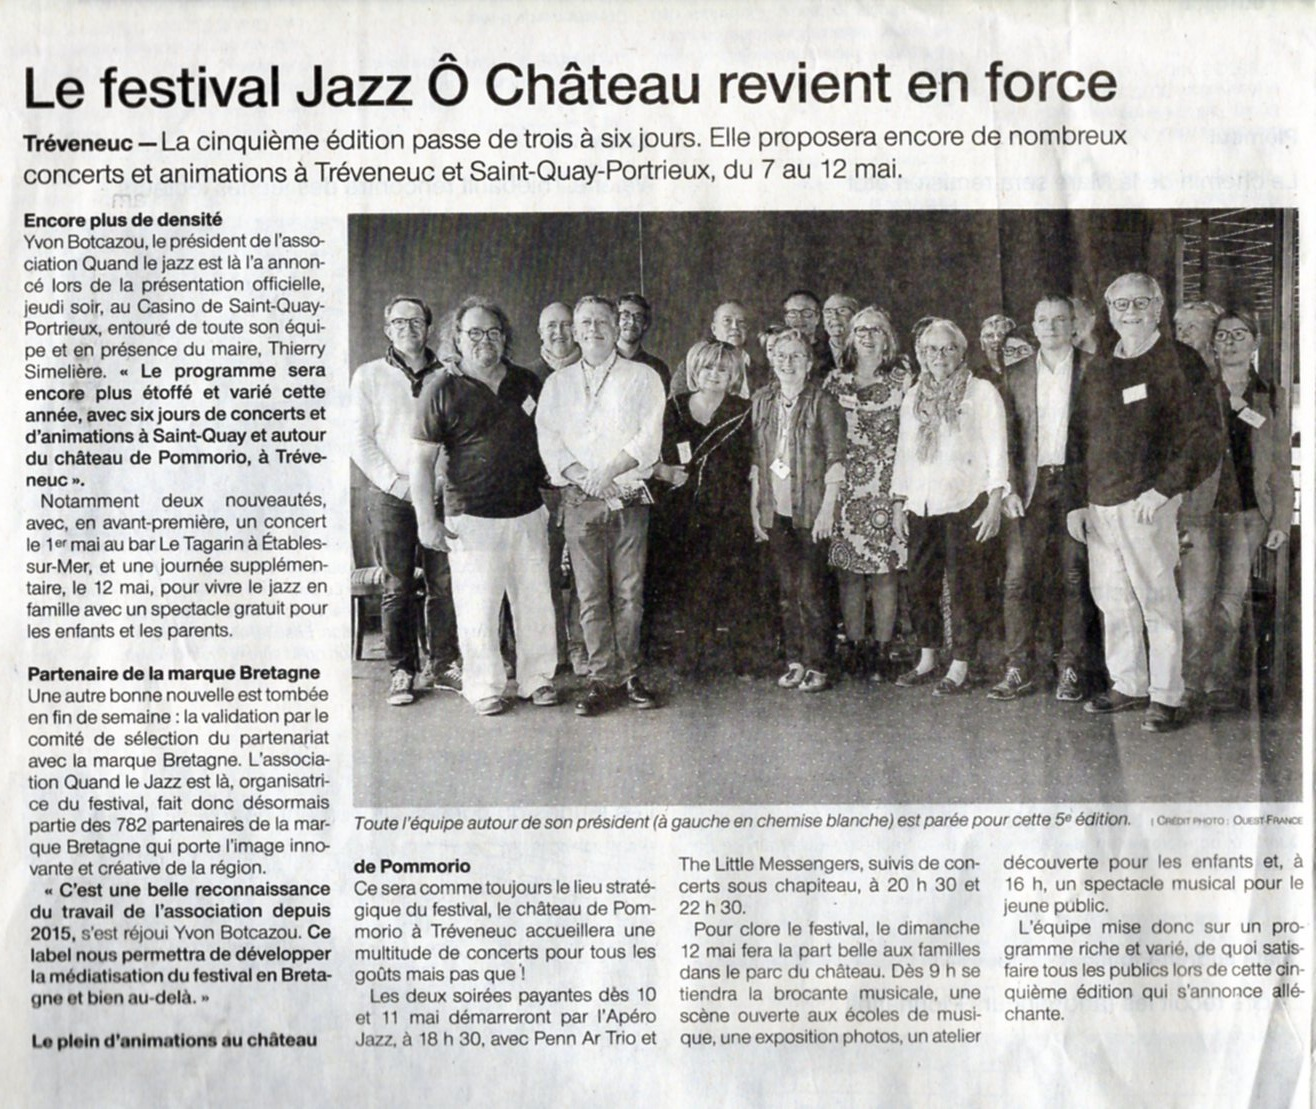 Ouest France - 29 avril 2019